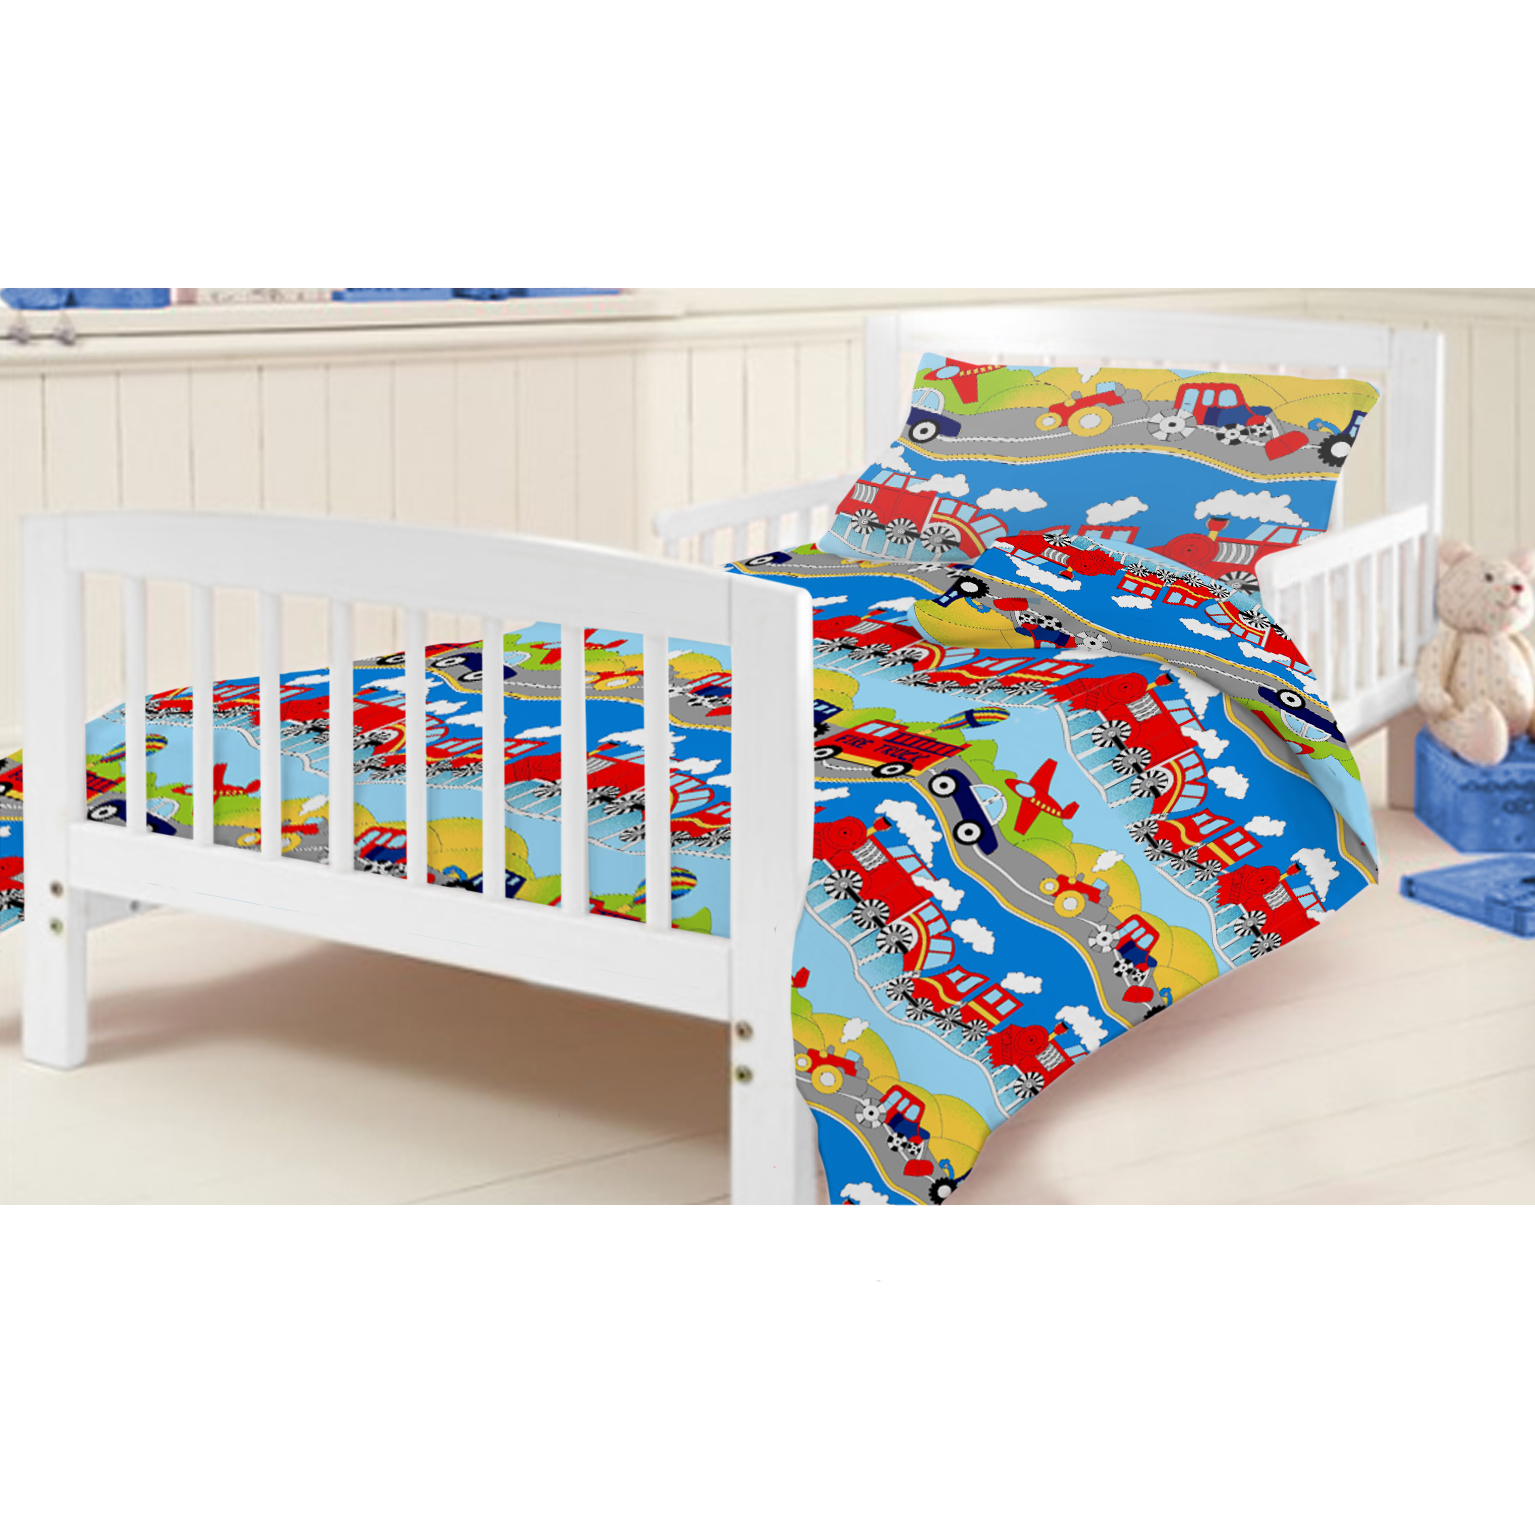 Boys Junior Bedding Set